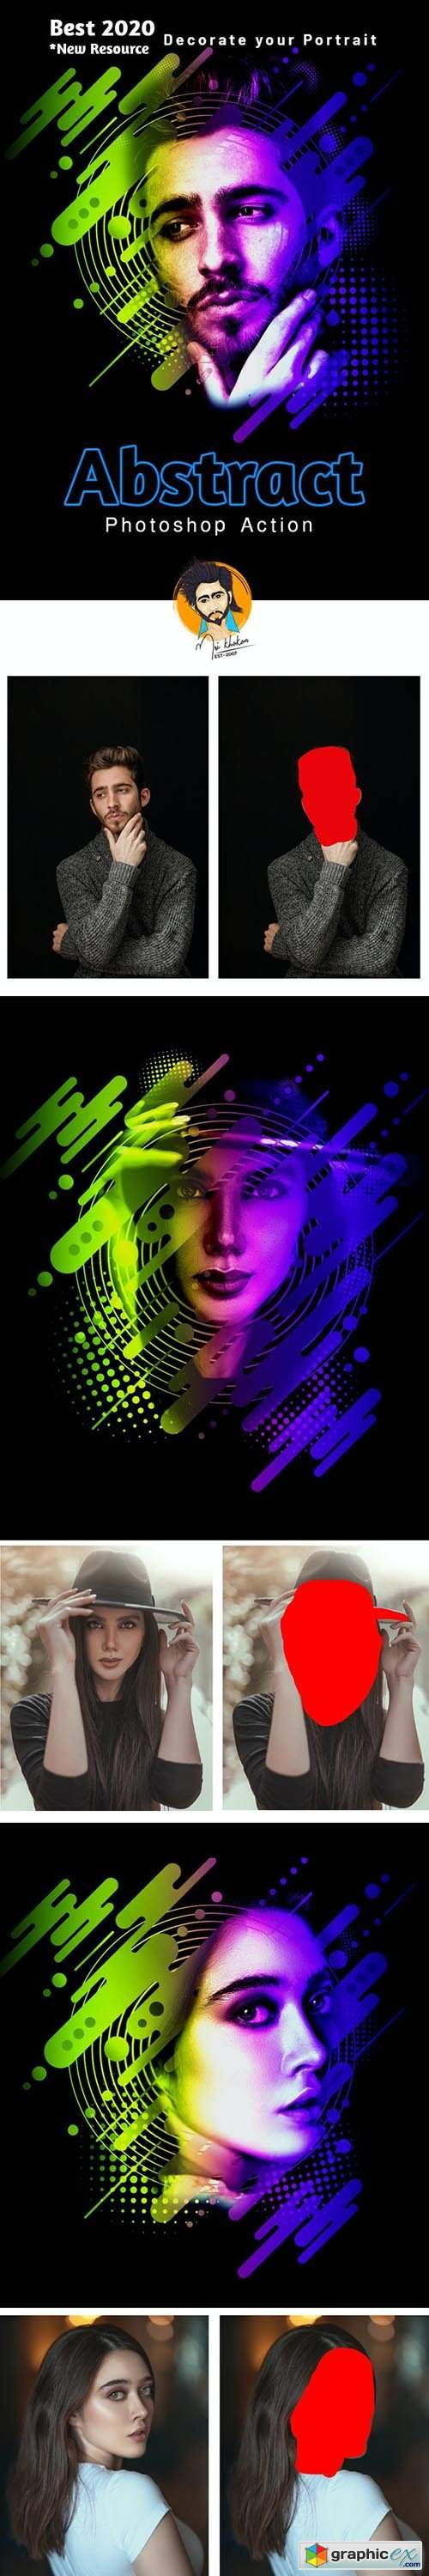 Abstract Portrait Photoshop Action 28890122